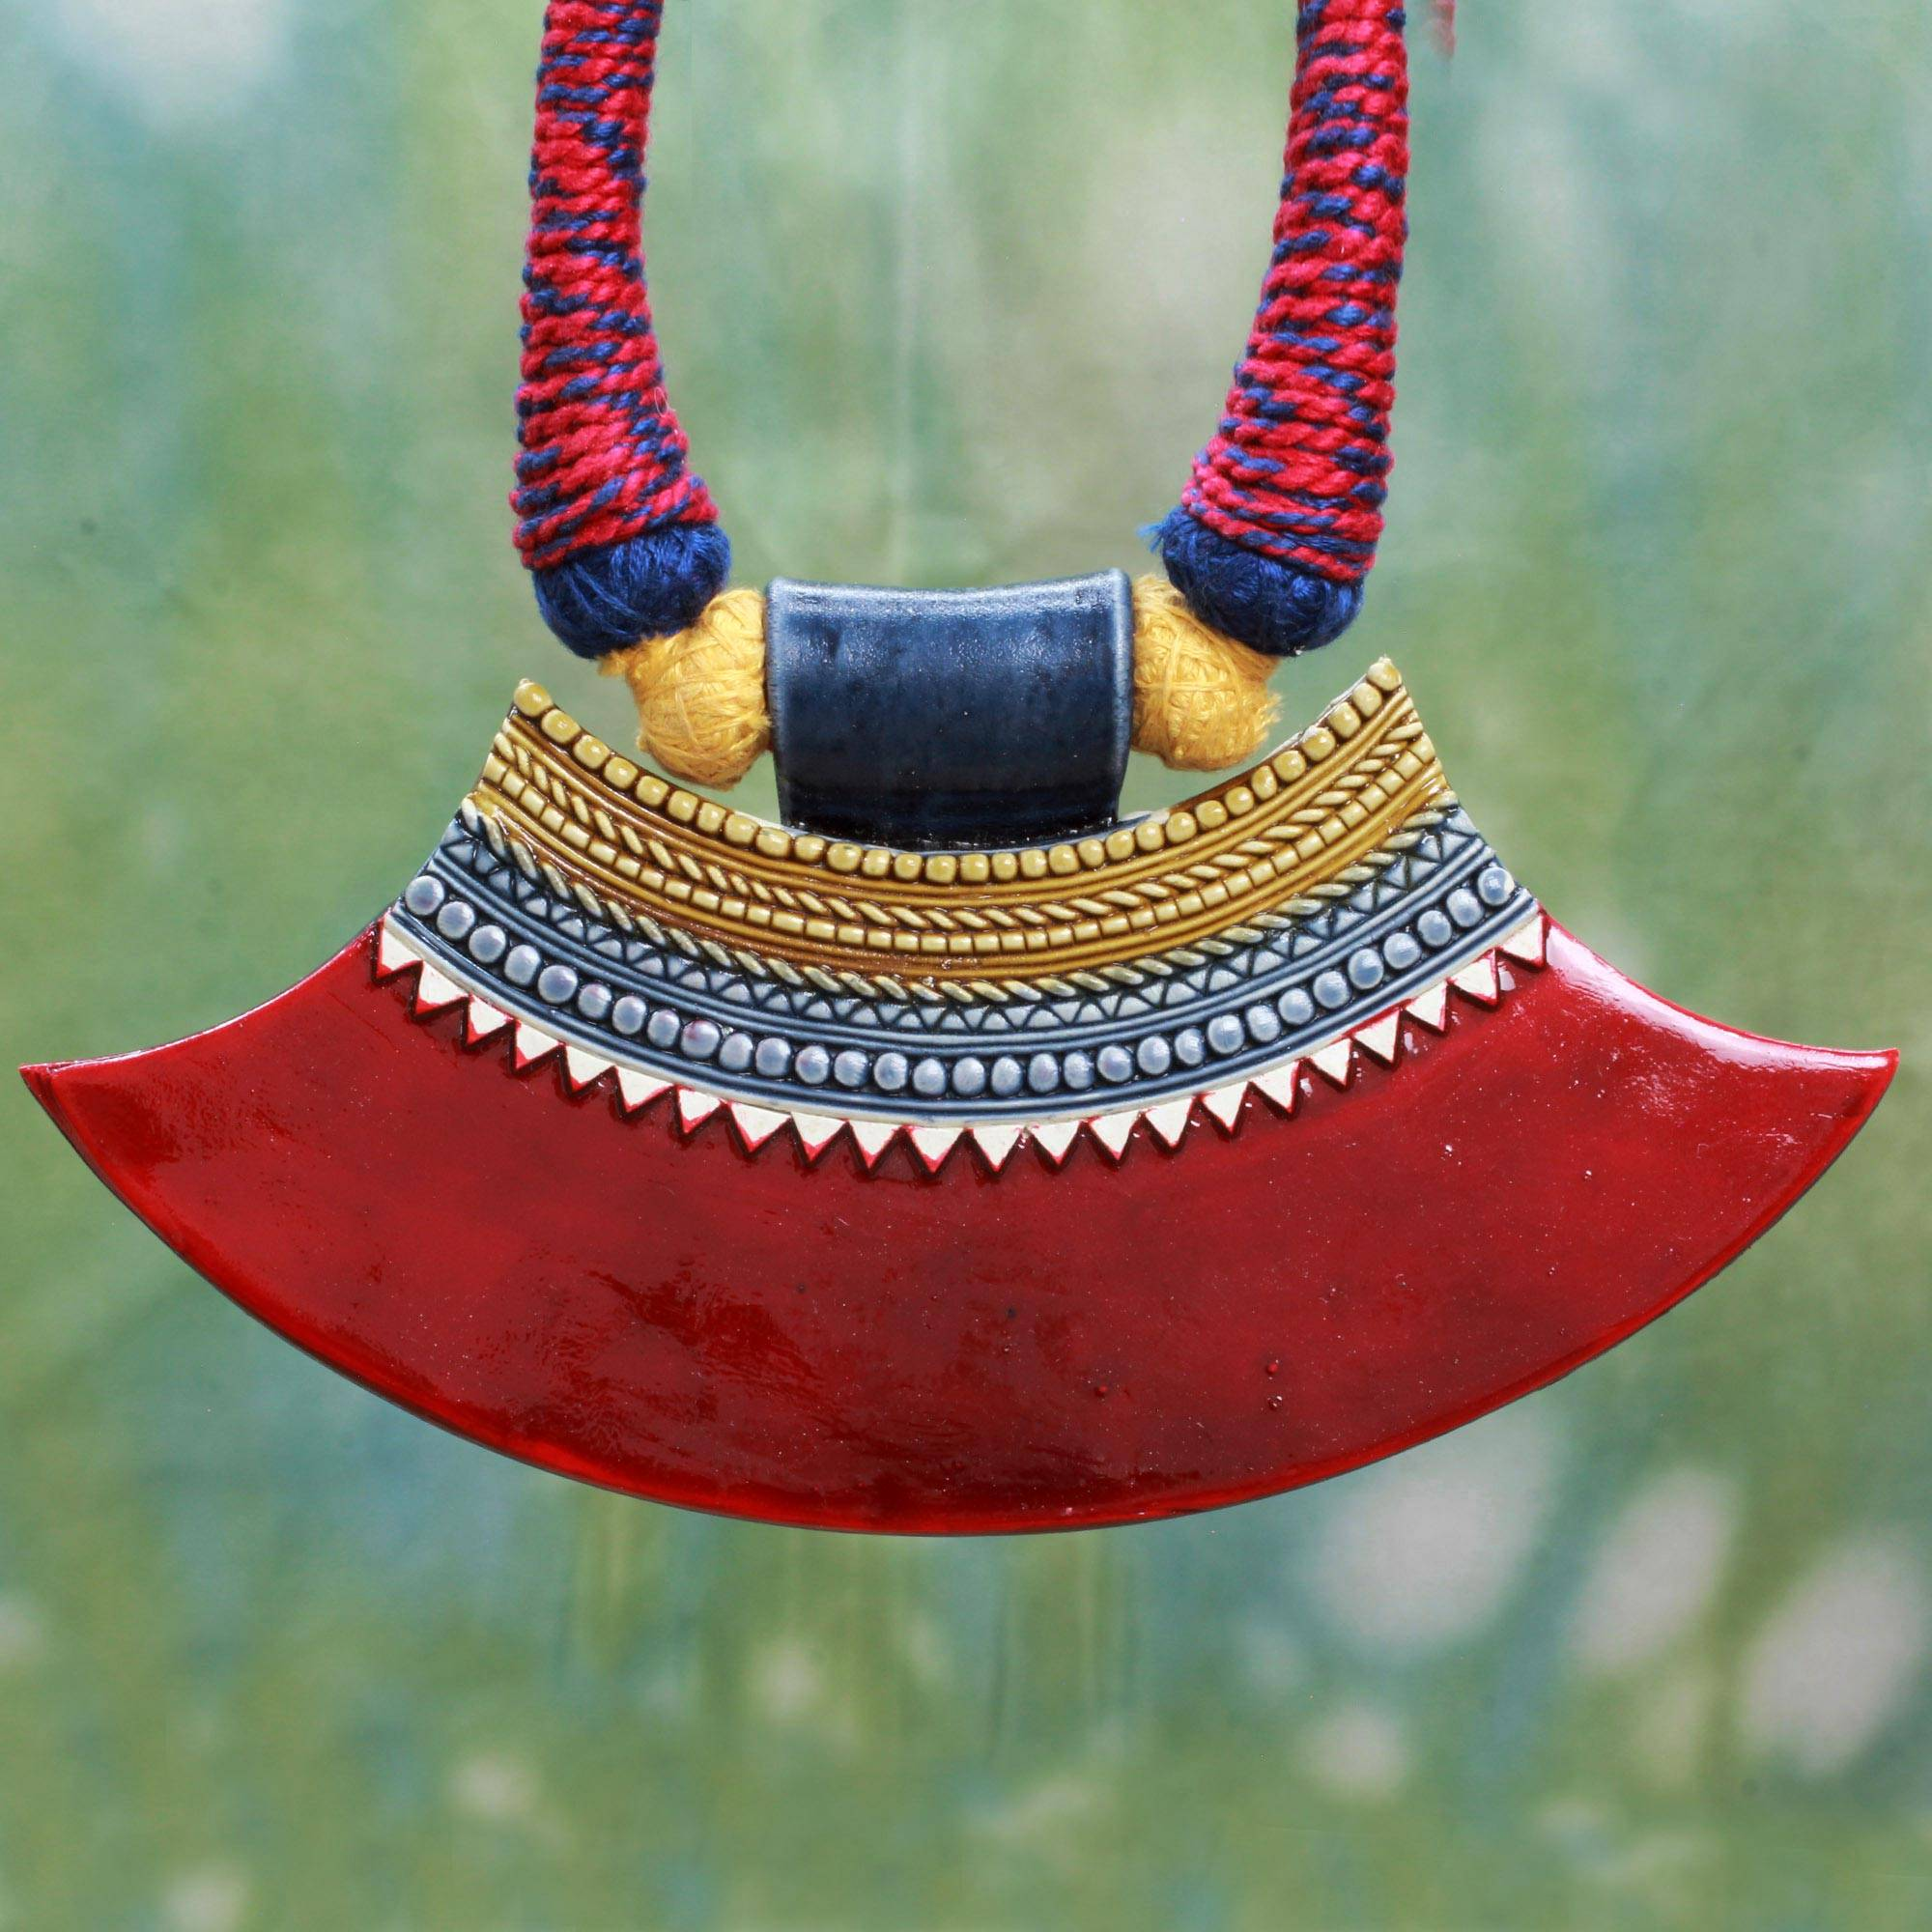 Naga Muse Naga Style Necklace Hand Crafted with Ceramic and Cotton The Perfect Necklace